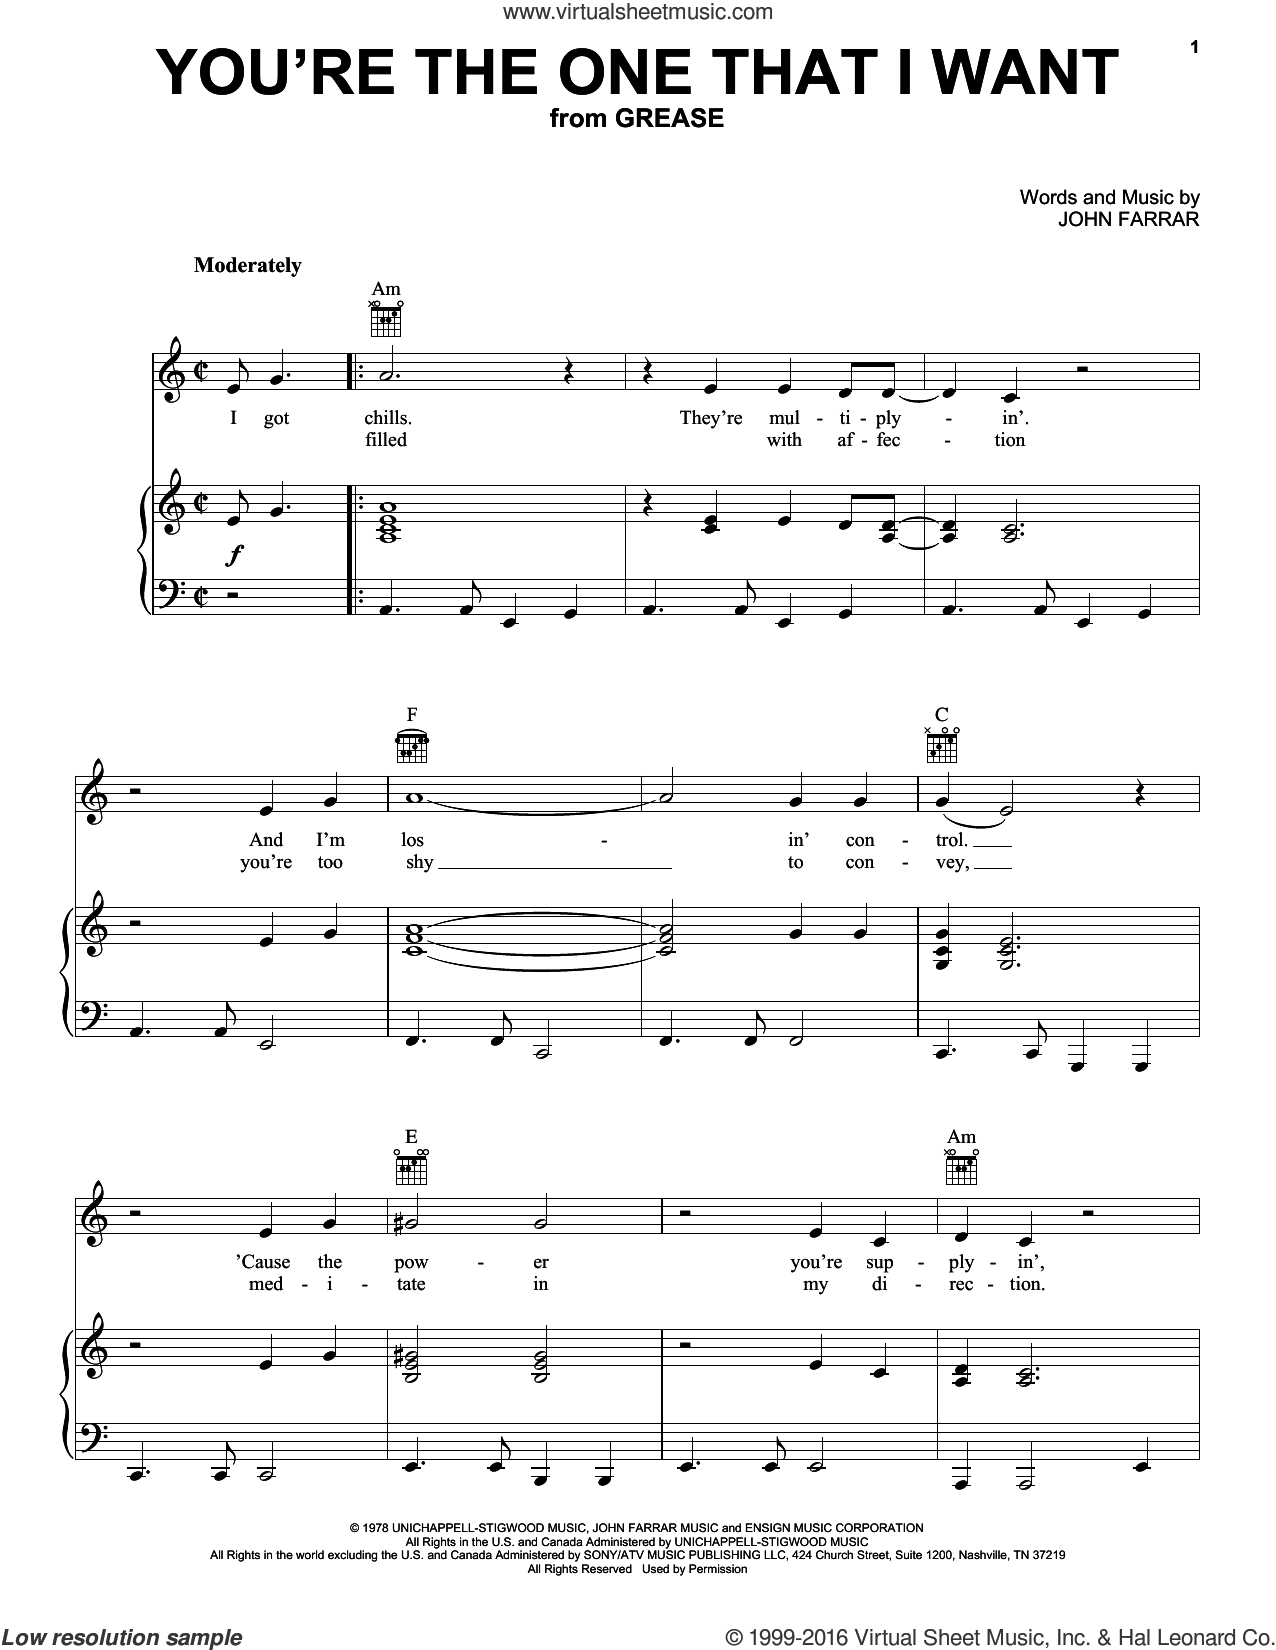 You're The One That I Want sheet music for voice, piano or guitar by John Farrar, John Travolta and Olivia Newton-John. Score Image Preview.